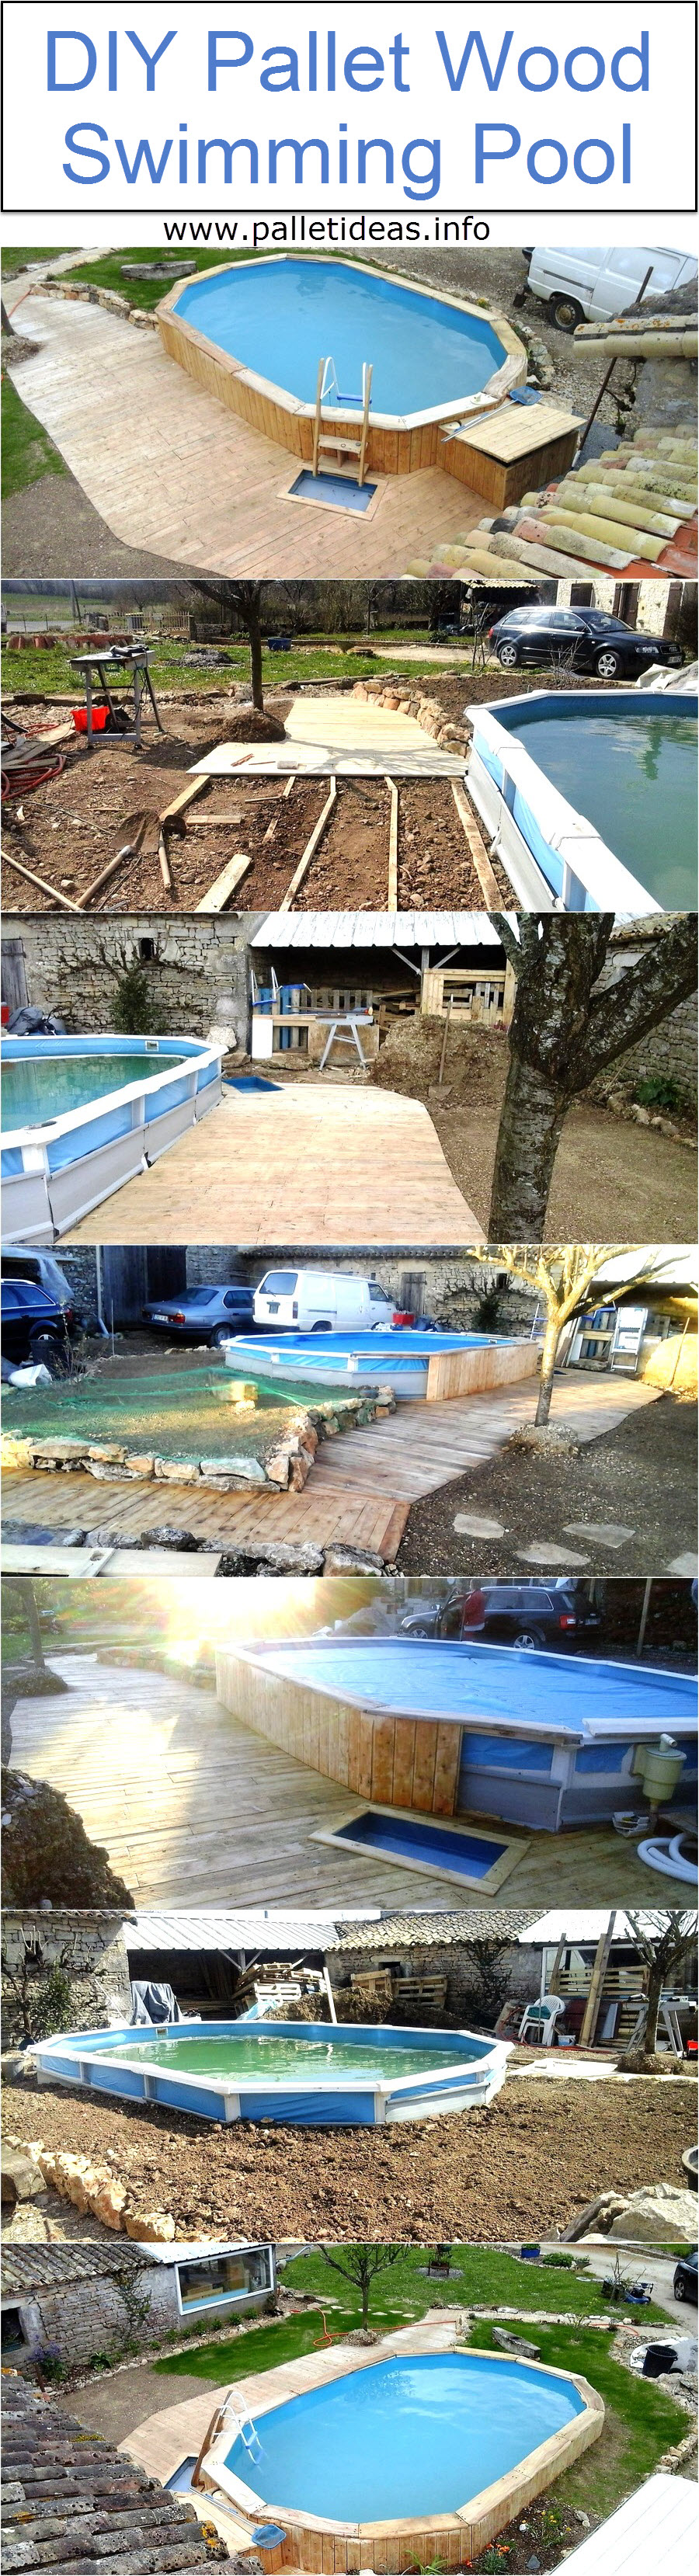 diy-pallet-wood-swimming-pool